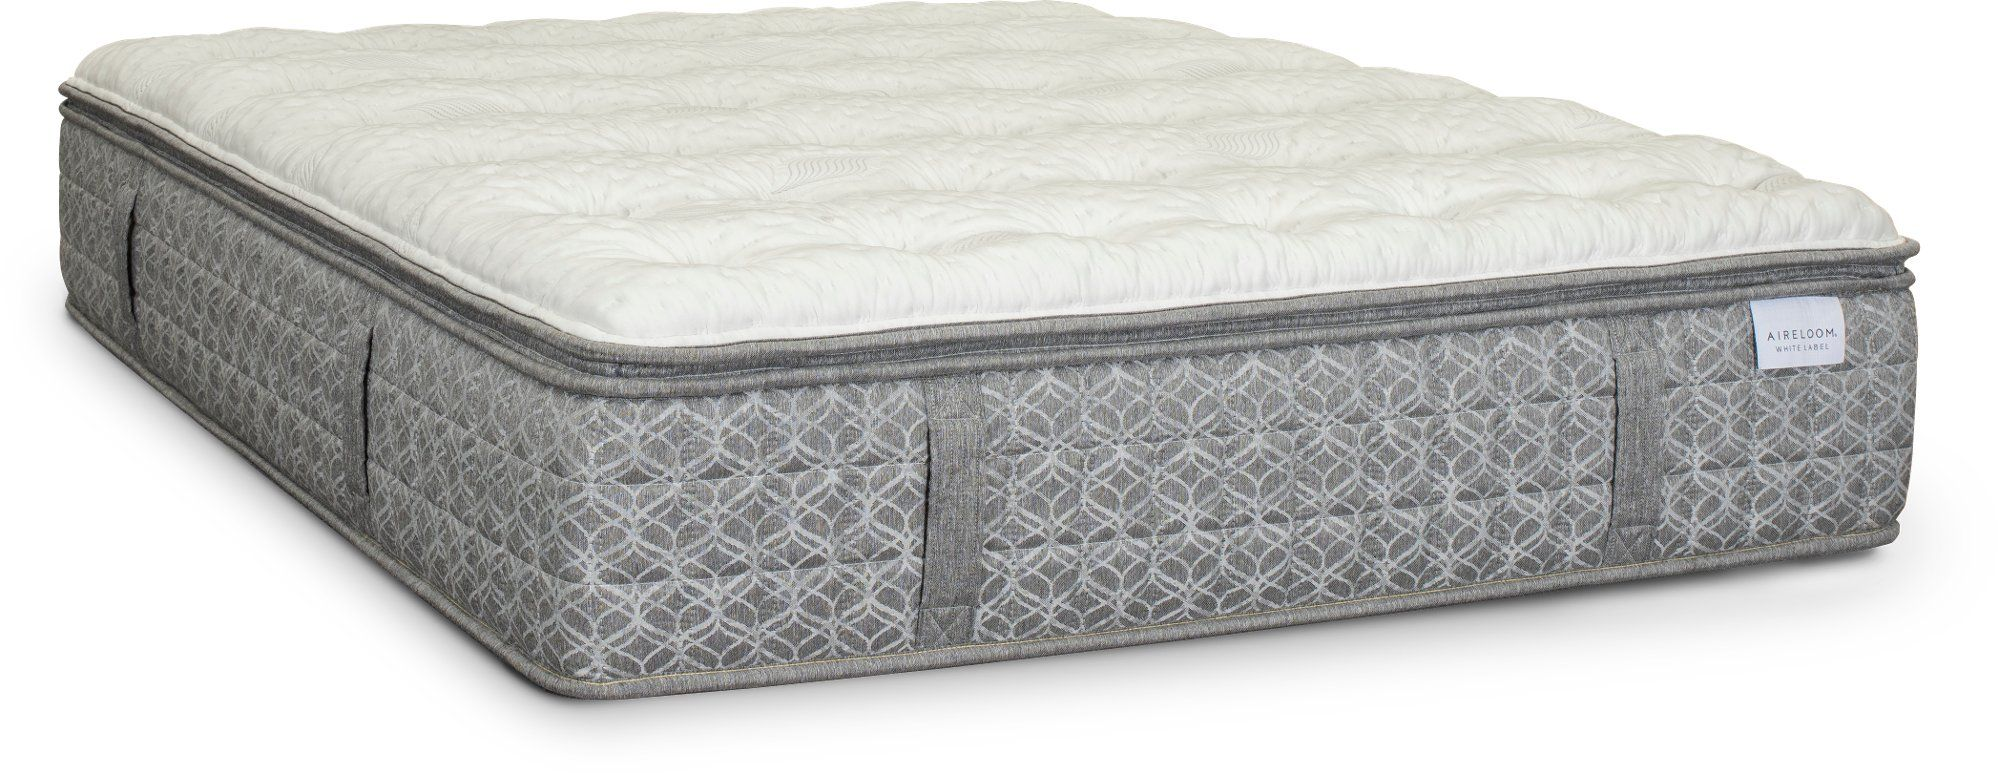 Aireloom Luxetop Firm Split King Mattress – White Label Camellia